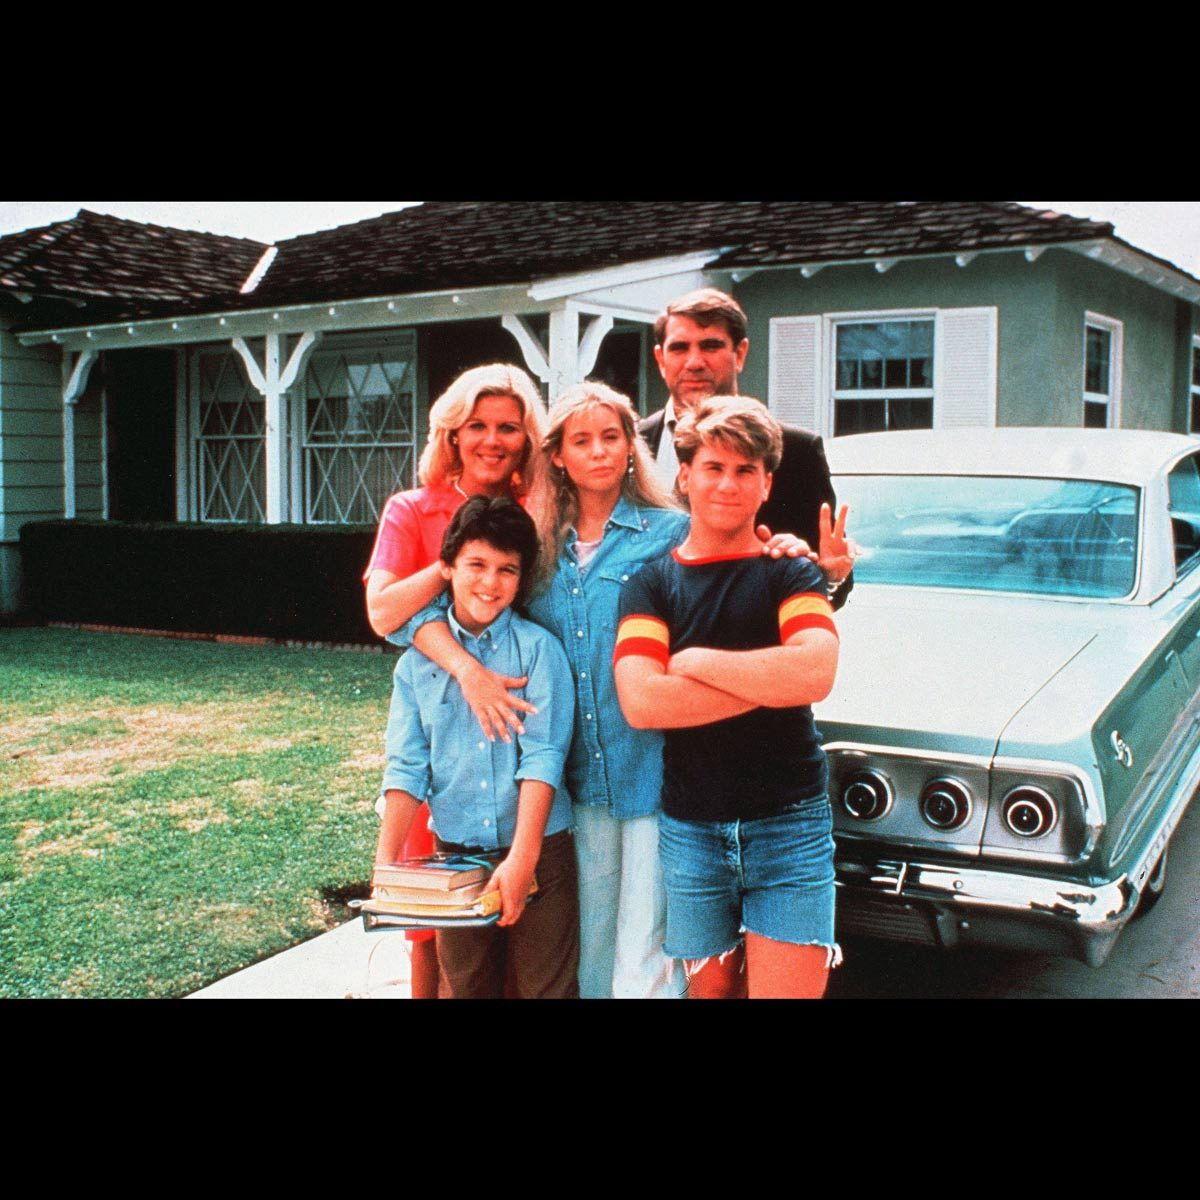 The Wonder Years Home